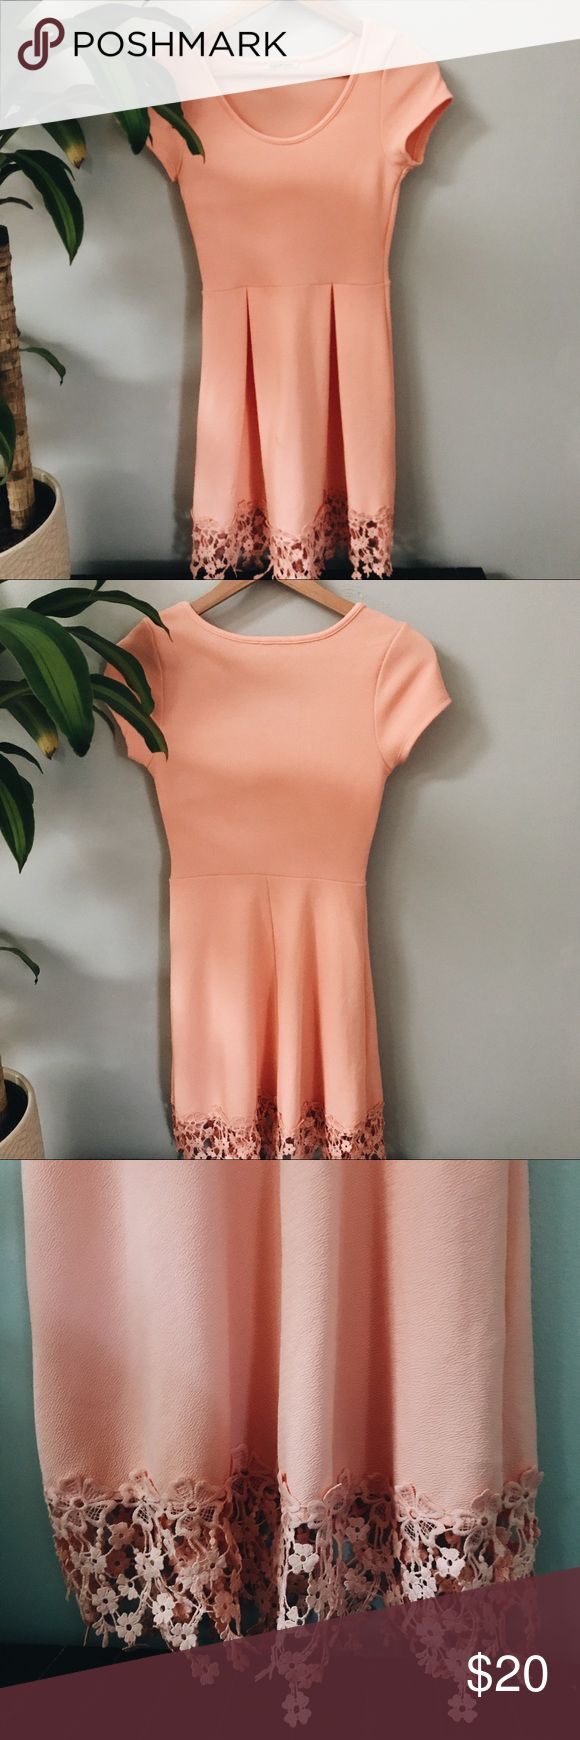 Salmon Dress with Lace details Salmon colored dress with flower lace details on the bottom, worn once. Forever 21 Dresses Midi